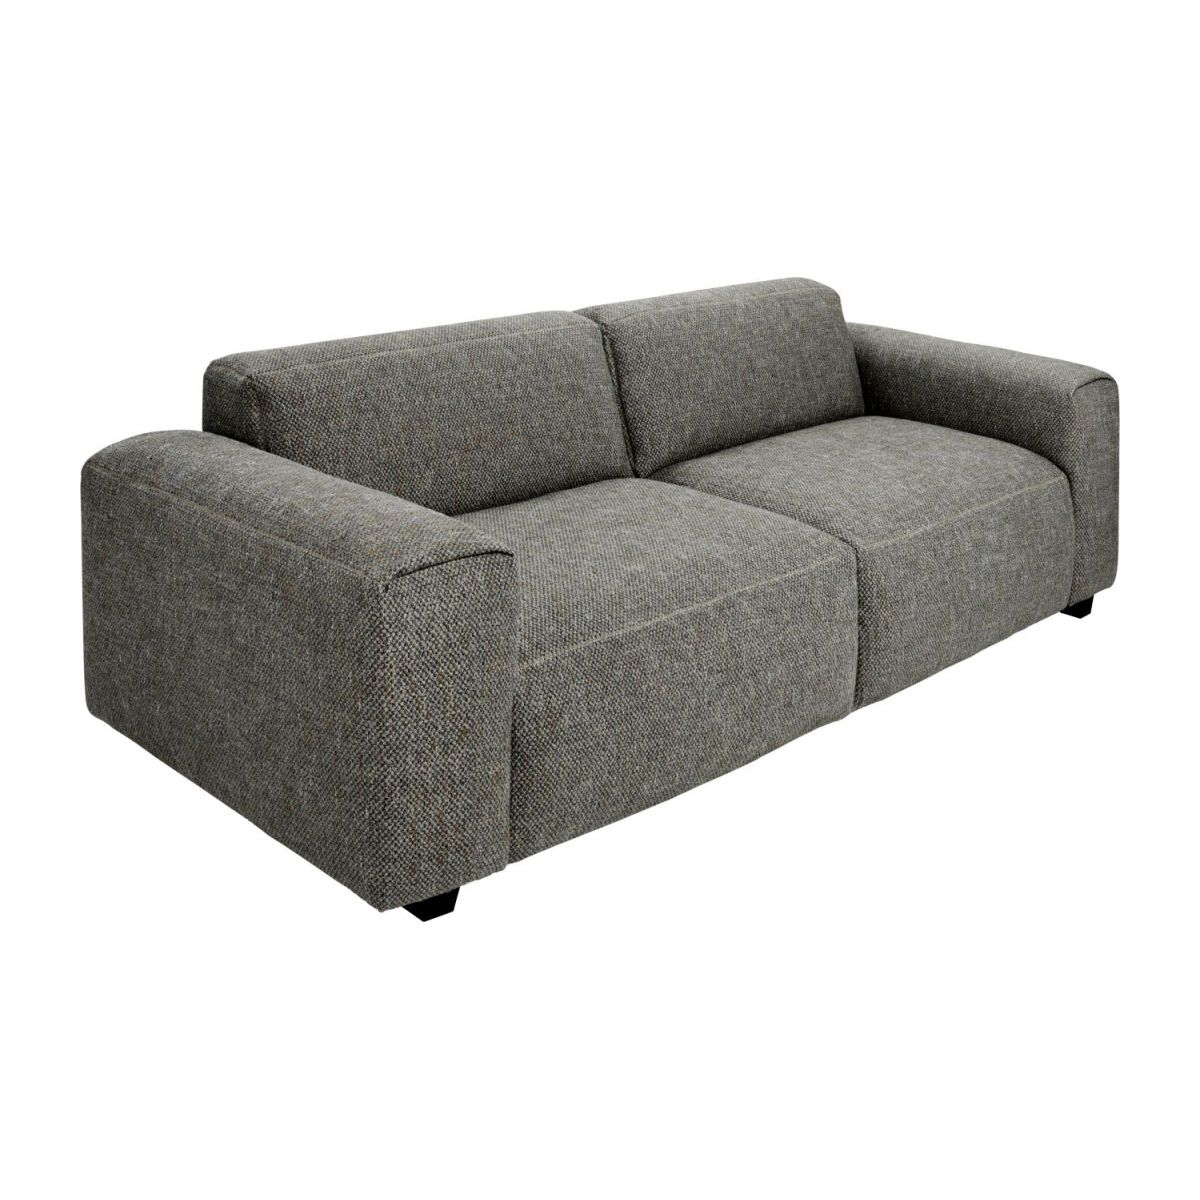 2-Sitzer Sofa aus Stoff Bellagio night black n°1